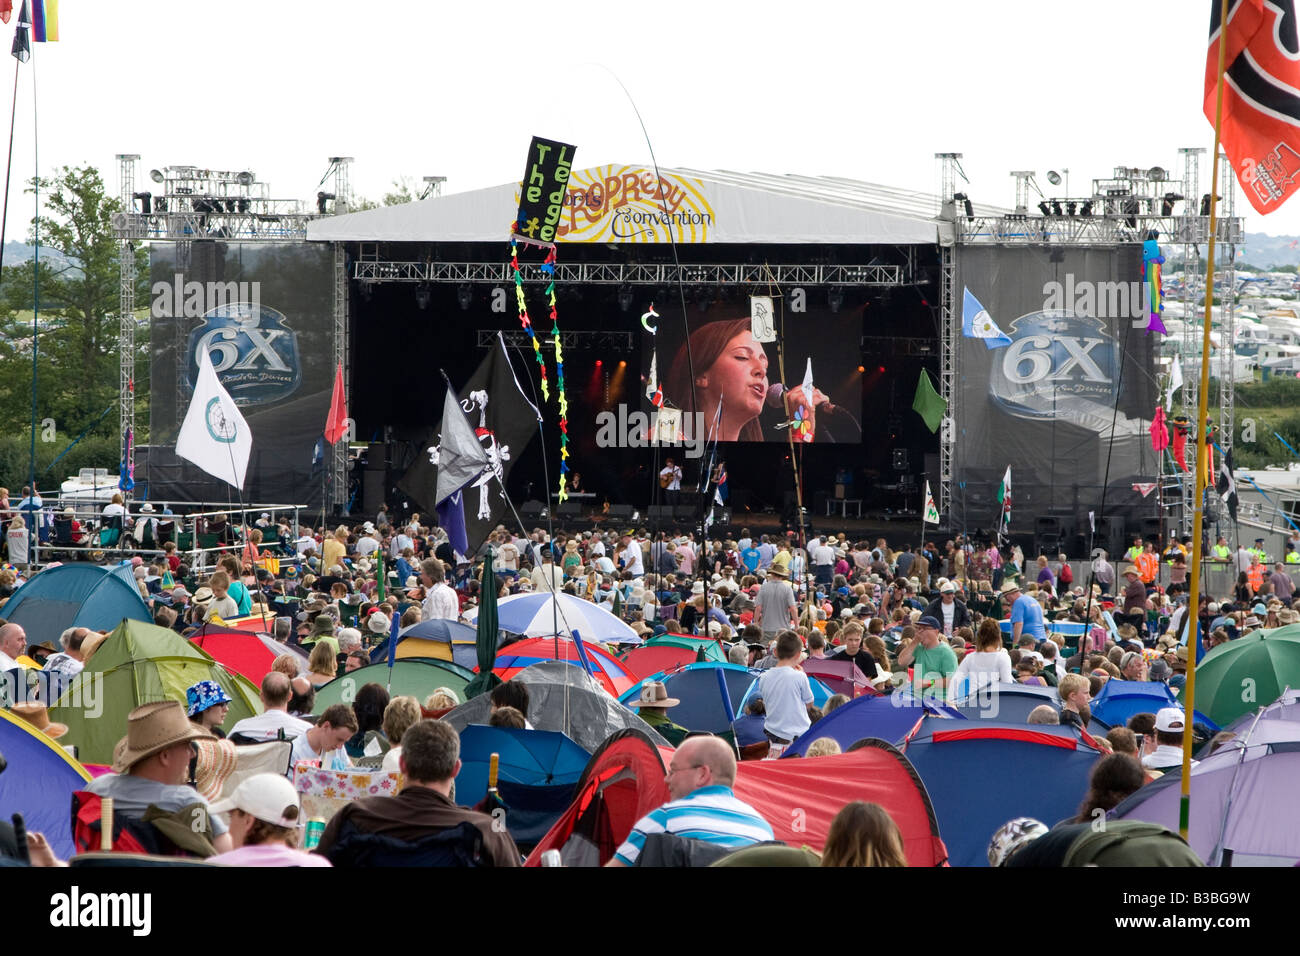 general view of crowd and stage Fairport's Cropredy Convention music festival 2008 near Banbury England UK - Stock Image